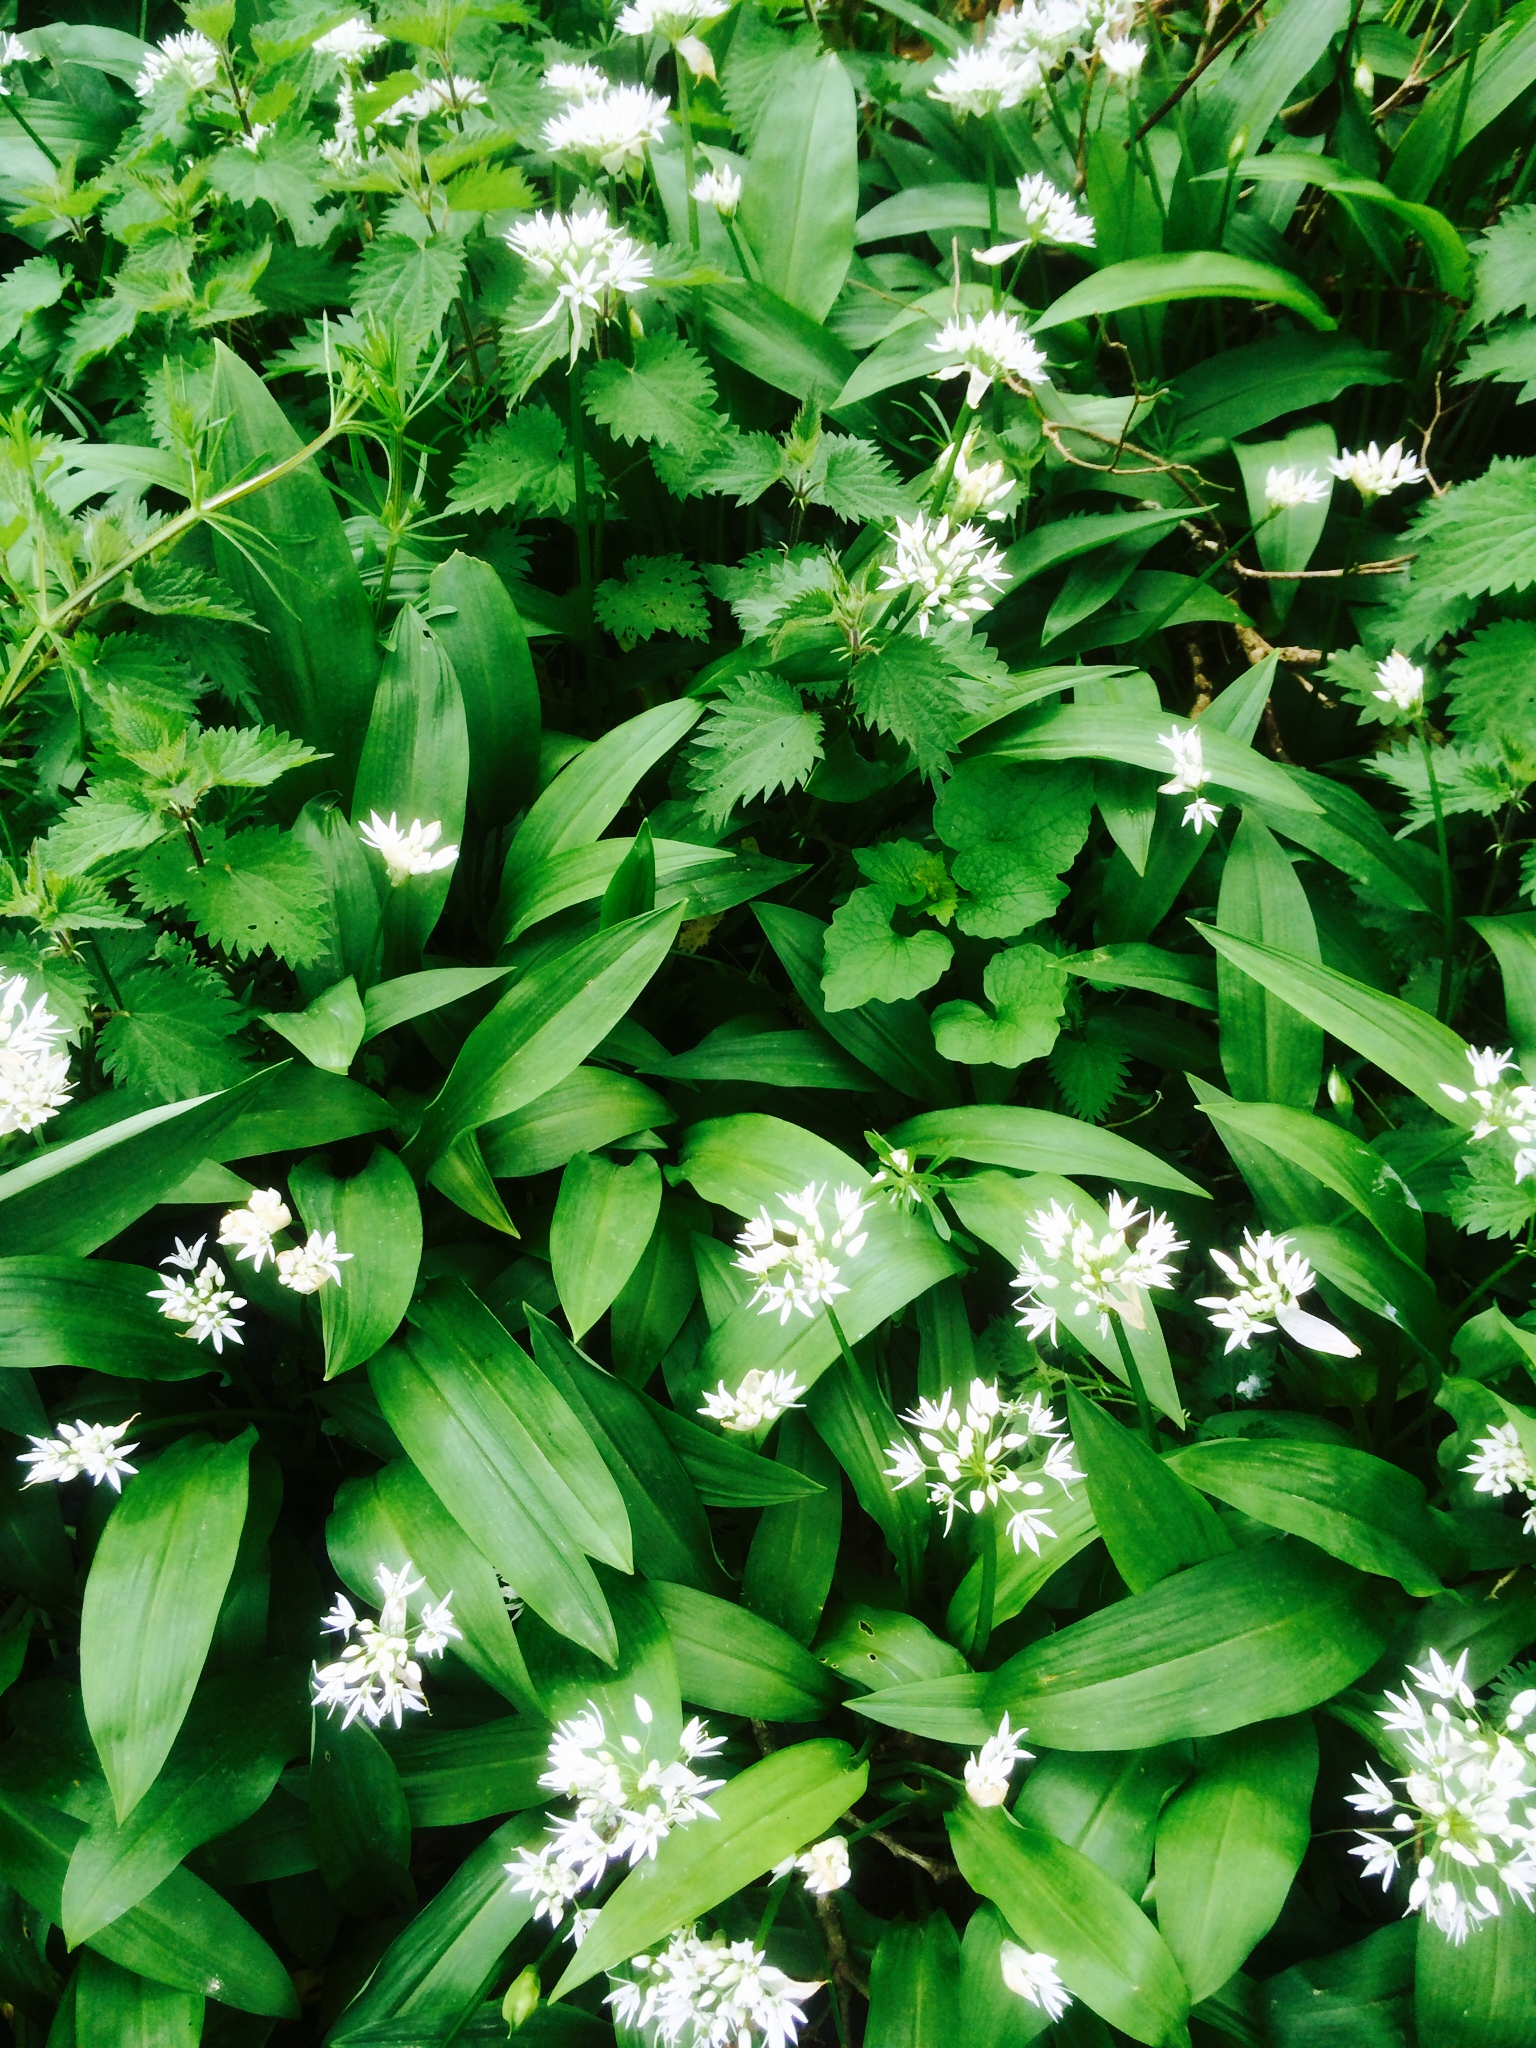 Spring Time Foraging Top 10 Wild Plants Outdoor Revival